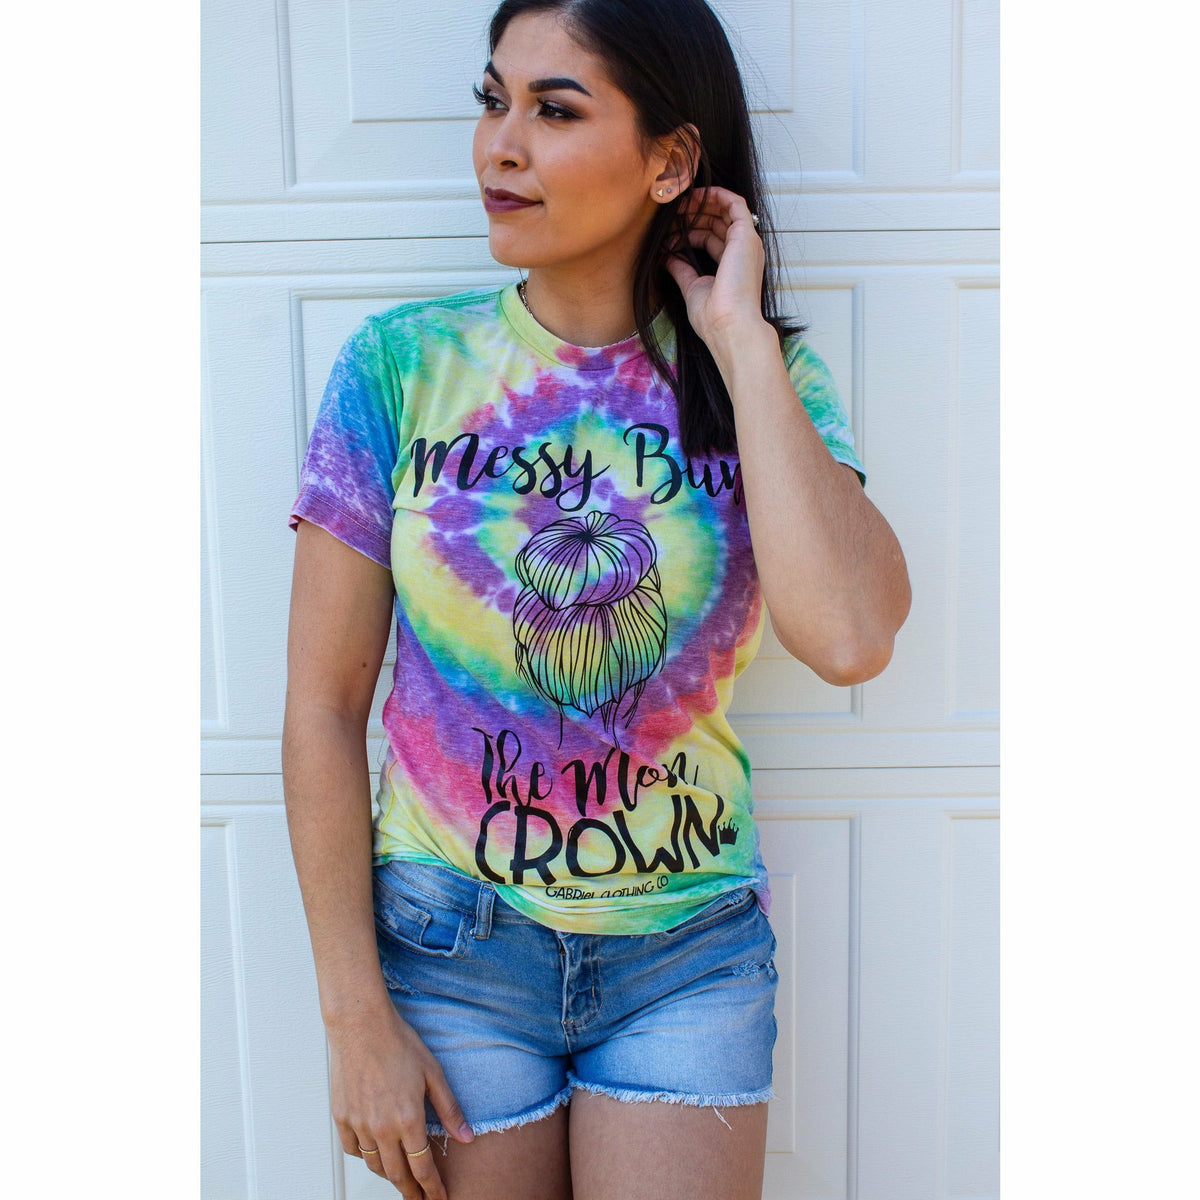 Messy Bun Mom Crown Tie dye tee